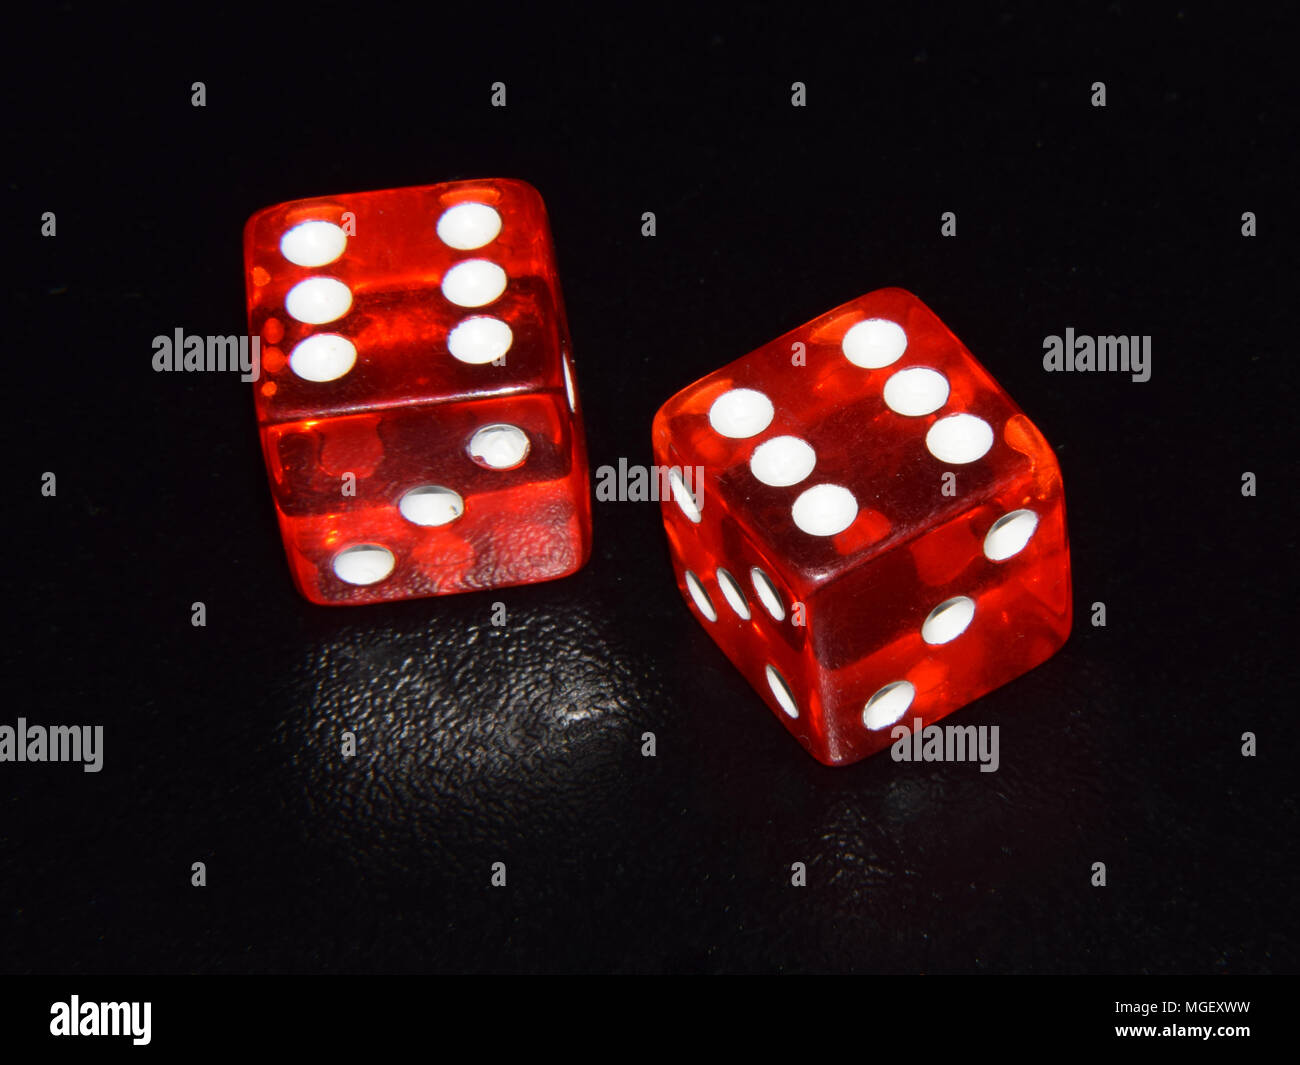 Red luminescent casino gambling dice on black background - double six Stock Photo